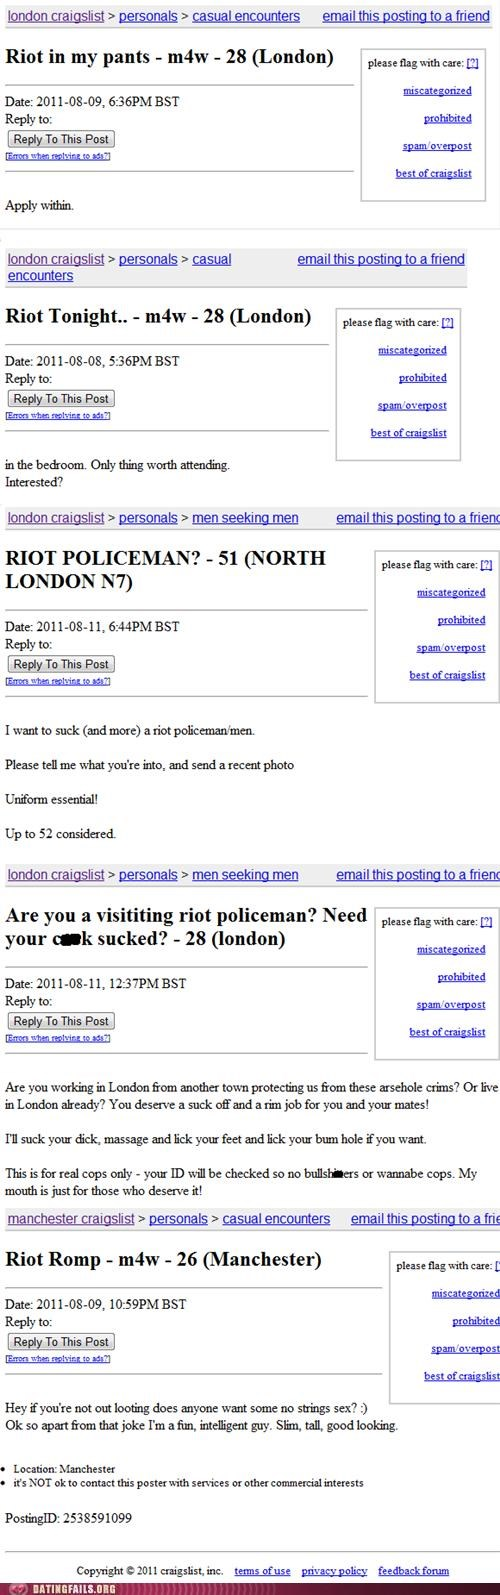 The London Riots Are Making Everyone Hot and Bothered